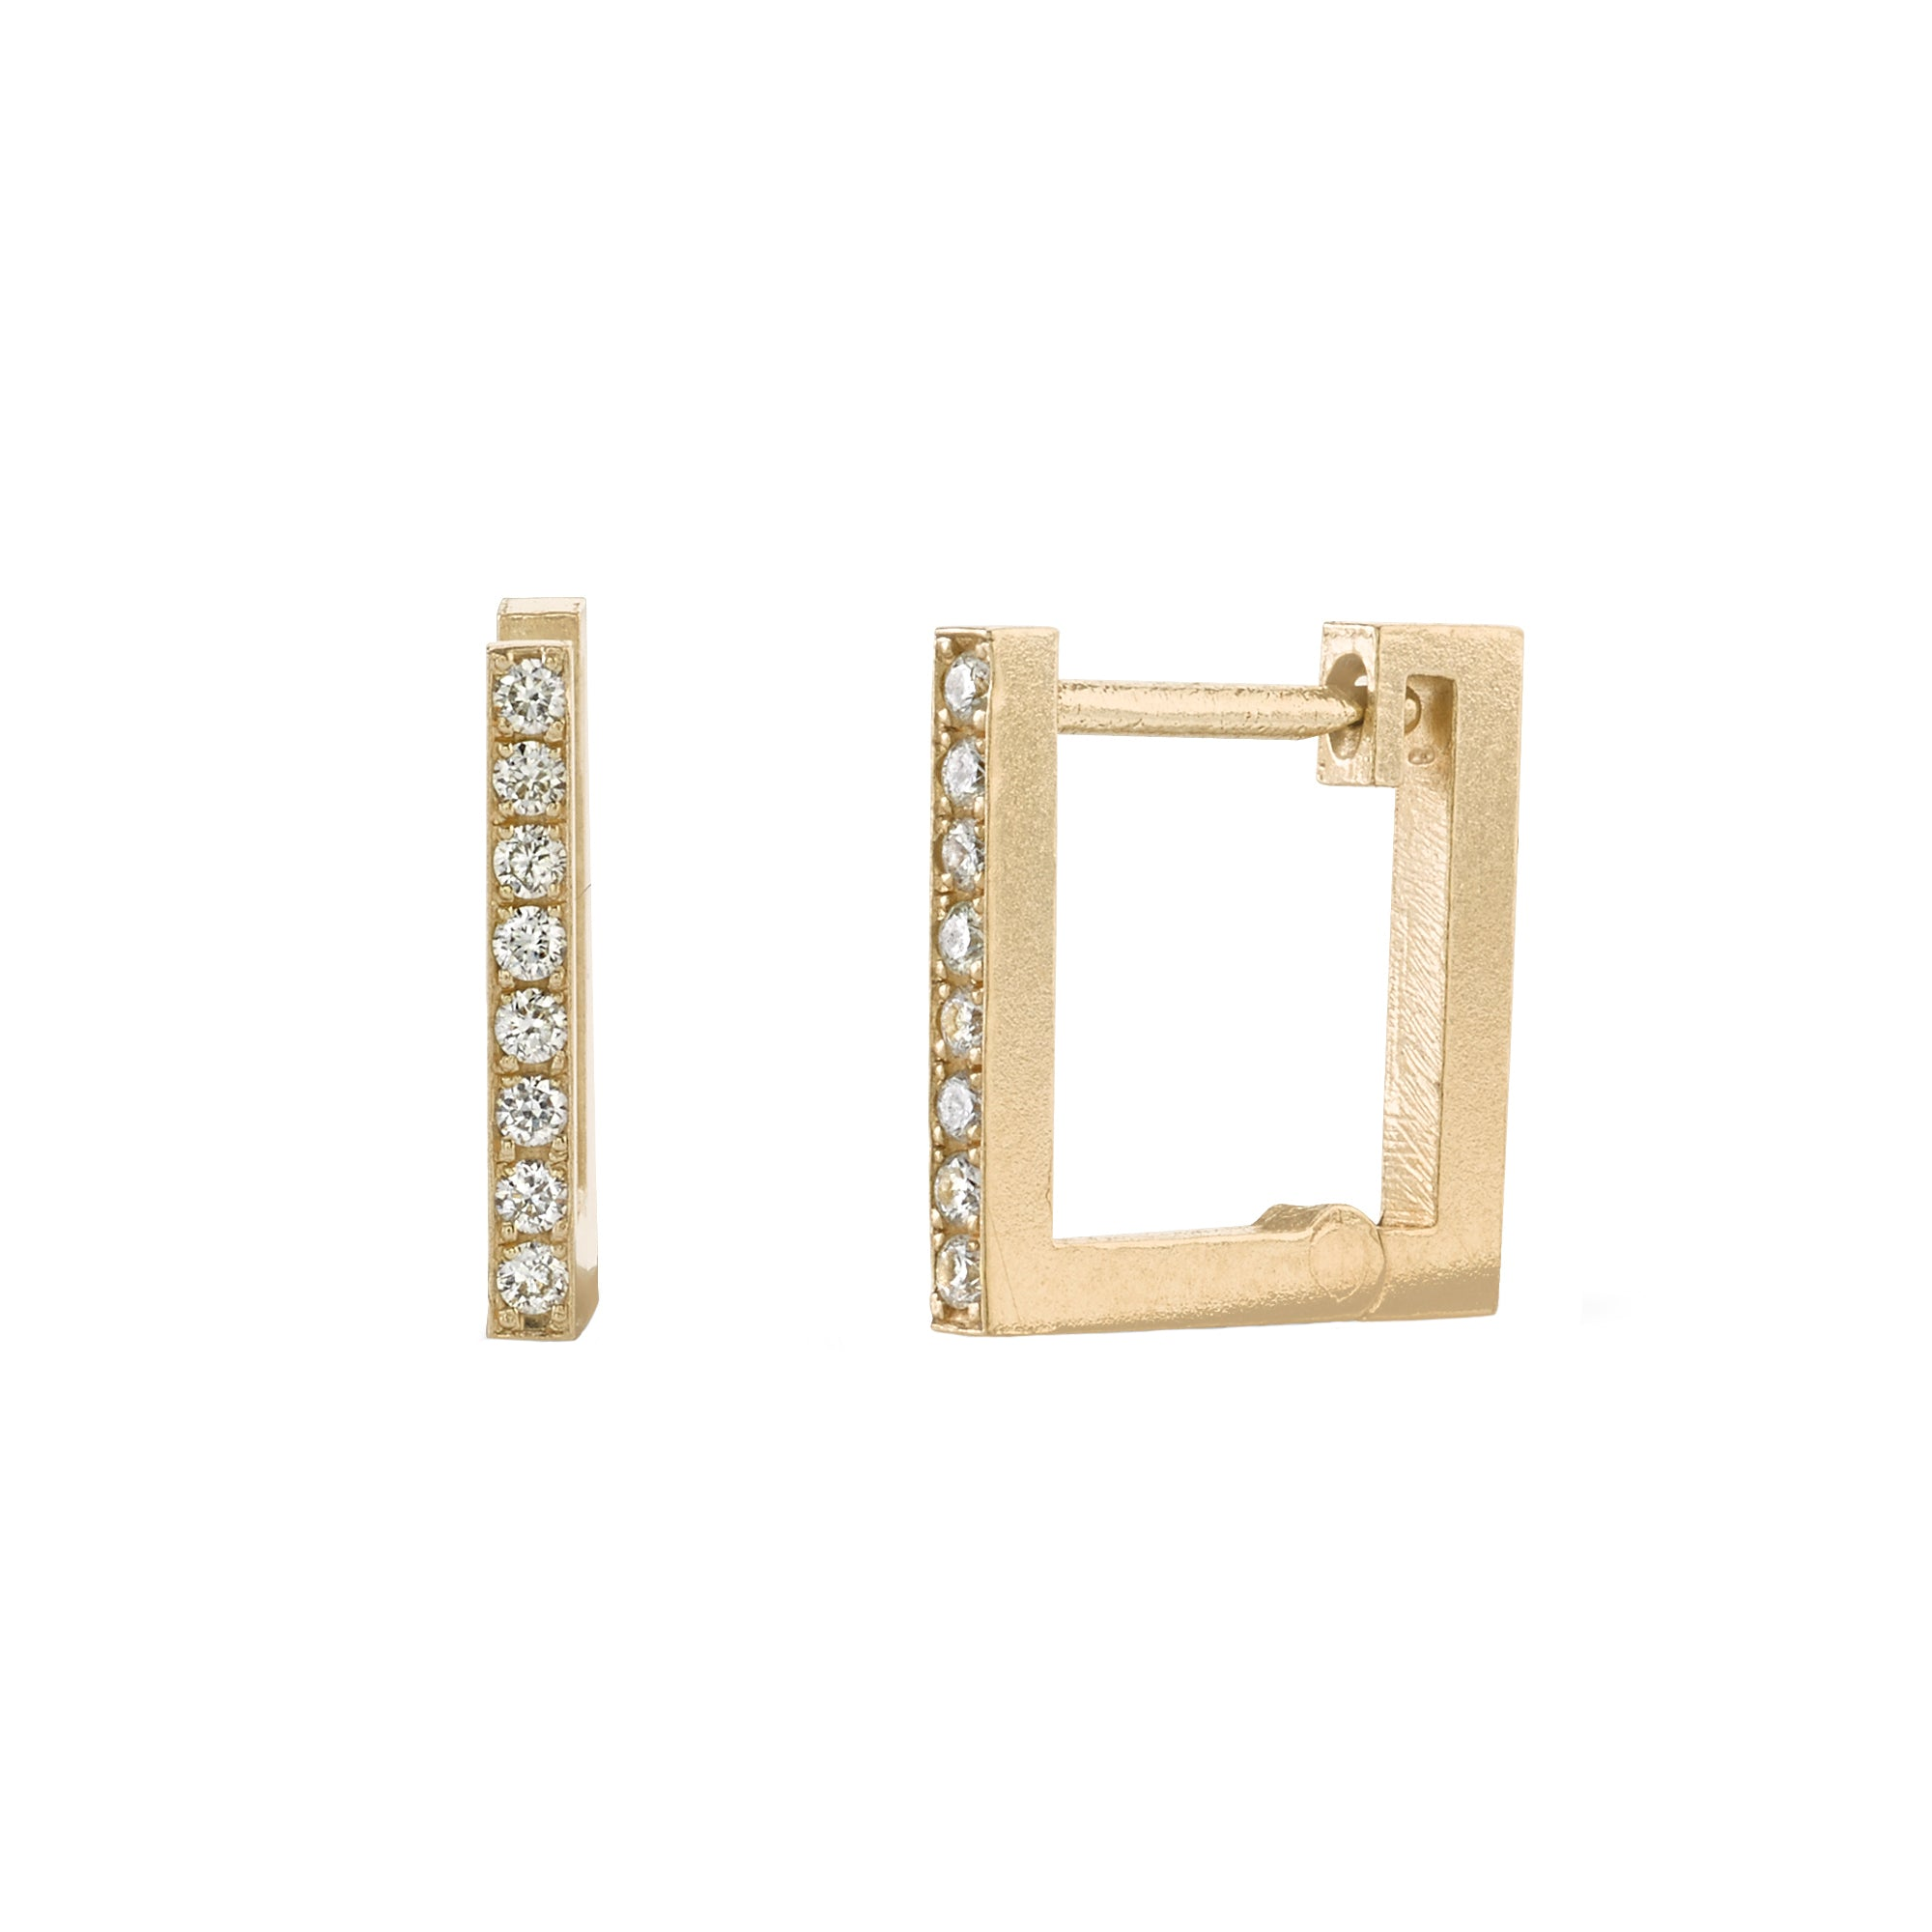 White Diamond Square Huggies by Lizzie Mandler for Broken English Jewelry